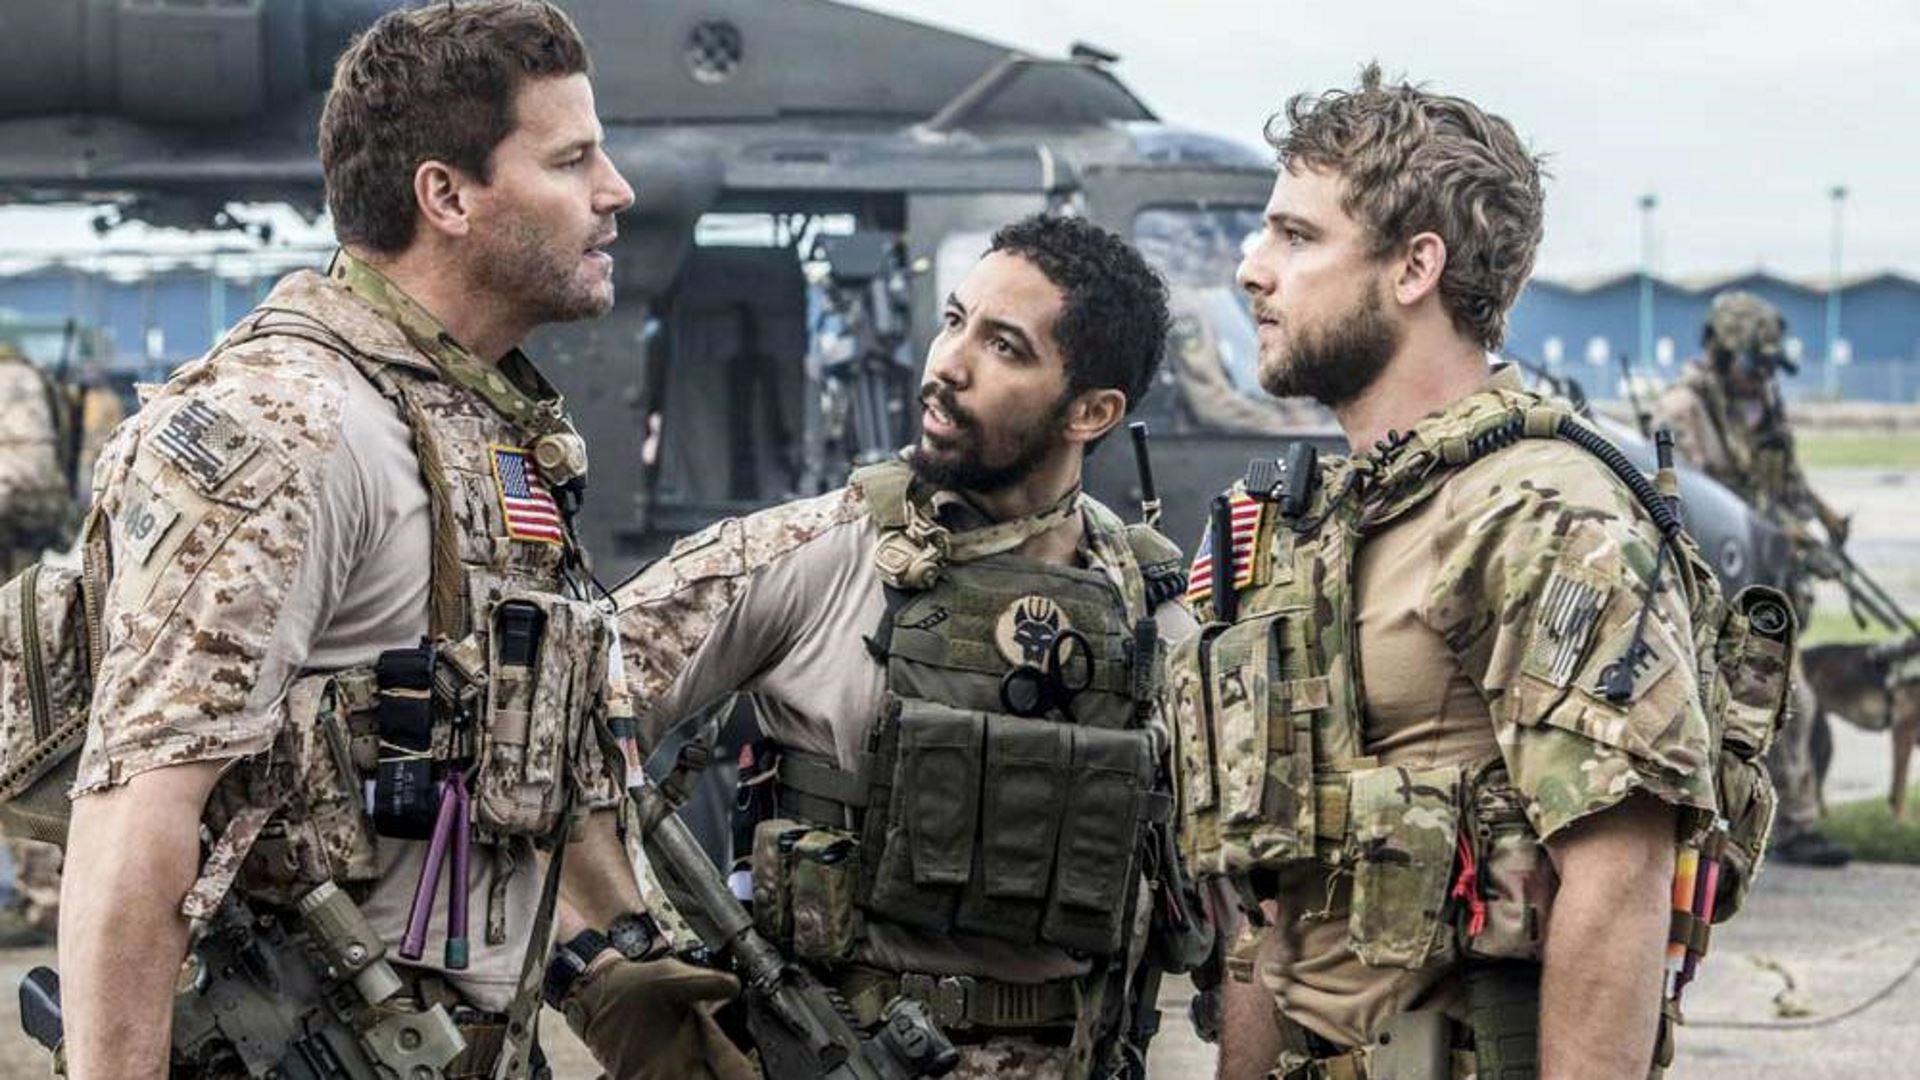 SEAL Team - Season 2 Watch in Best Quality for Free on Fmovies